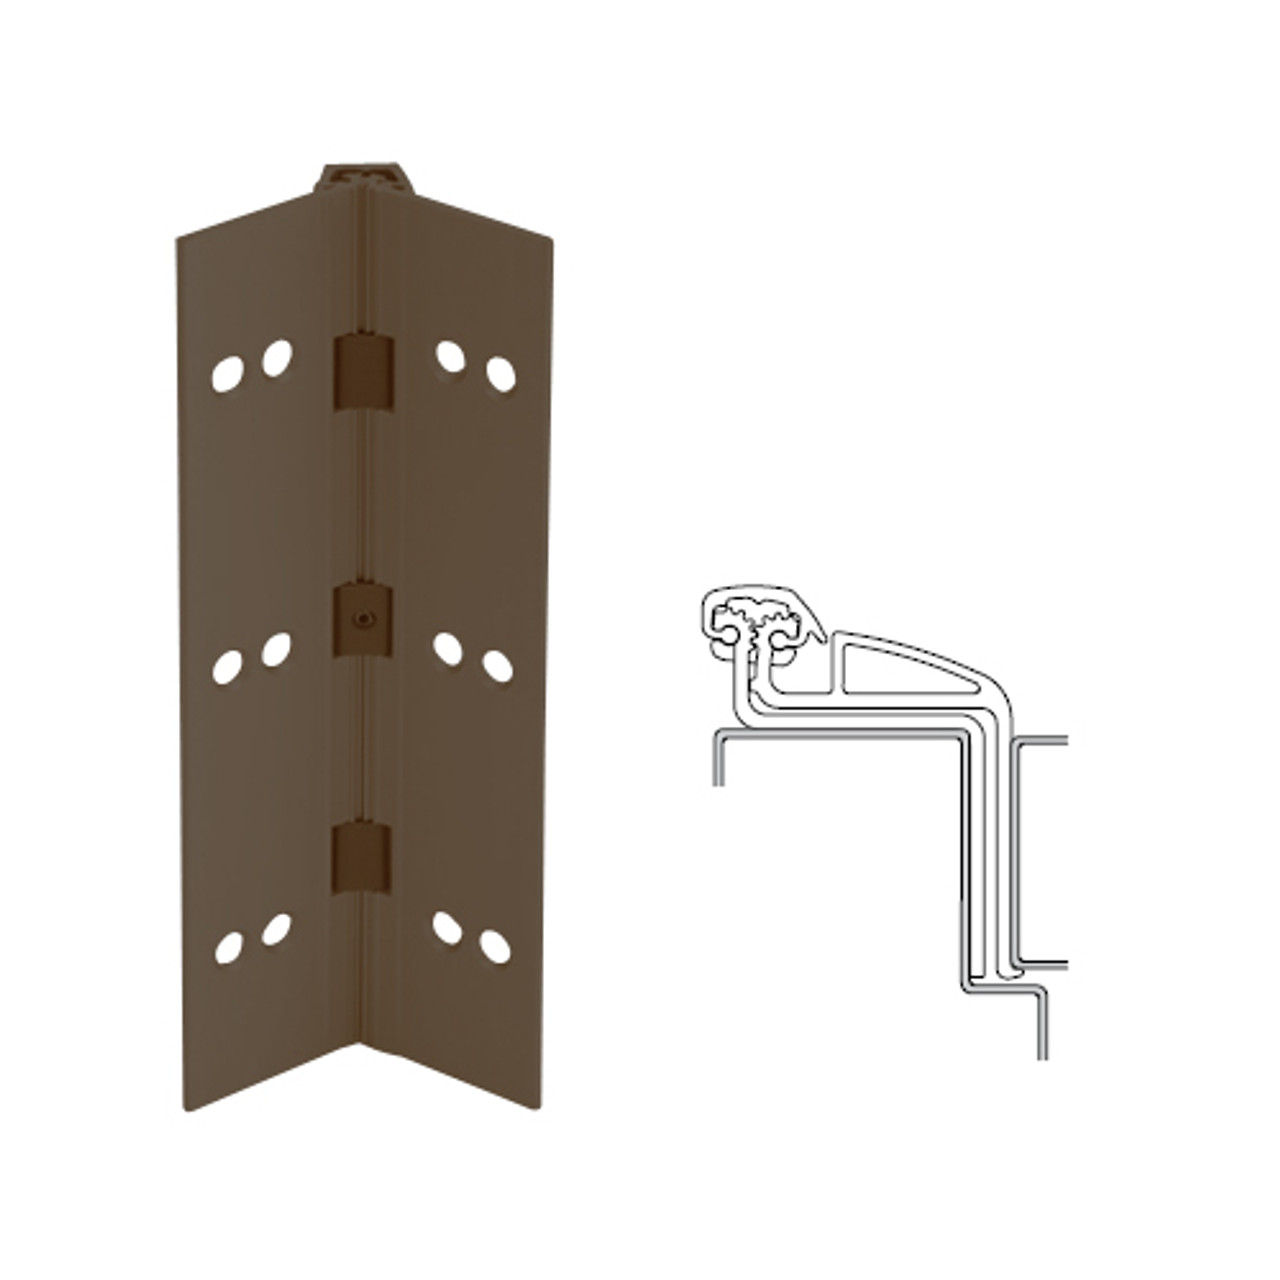 041XY-313AN-95-SECWDWD IVES Full Mortise Continuous Geared Hinges with Security Screws - Hex Pin Drive in Dark Bronze Anodized